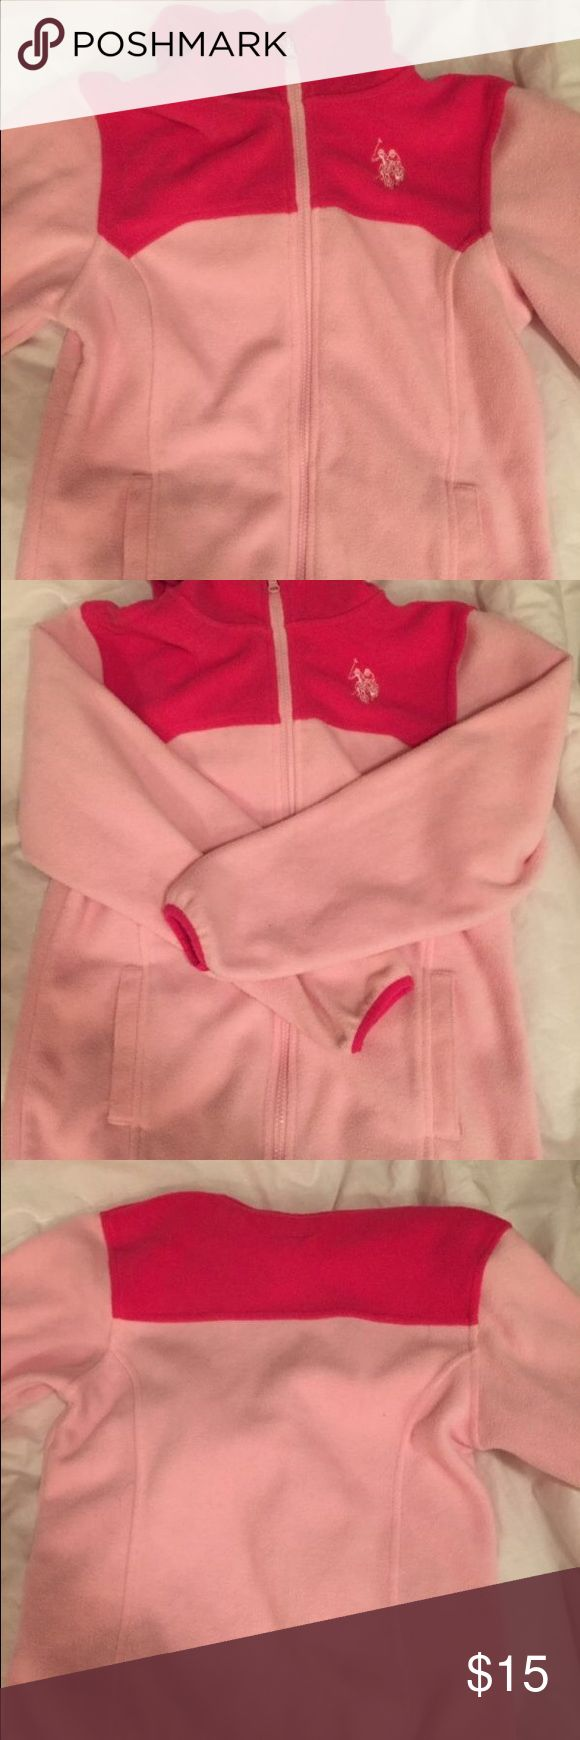 Women's size small Ralph Lauren Polo pink zip up Cute and cozy pink Ralph Lauren zip up. Features a hood and front pockets. Worn once, purchased second hand. Polo by Ralph Lauren Tops Sweatshirts & Hoodies